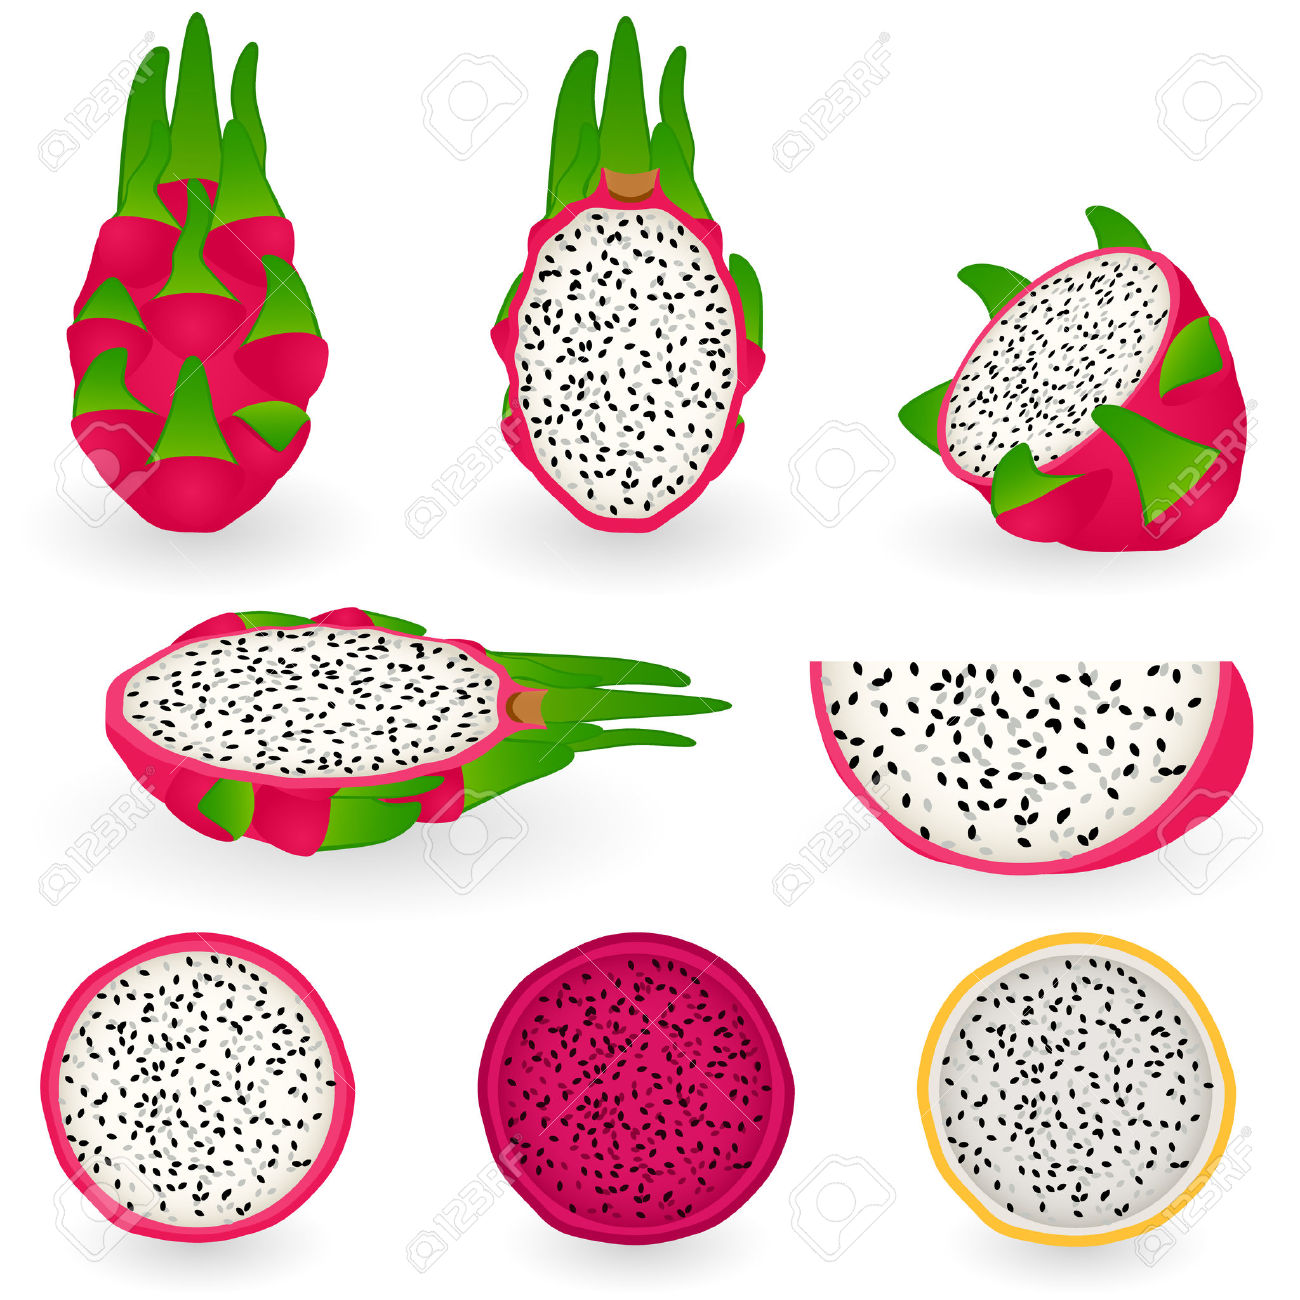 Illustration Of Dragon Fruit Also Known As Pitaya, Strawberry.